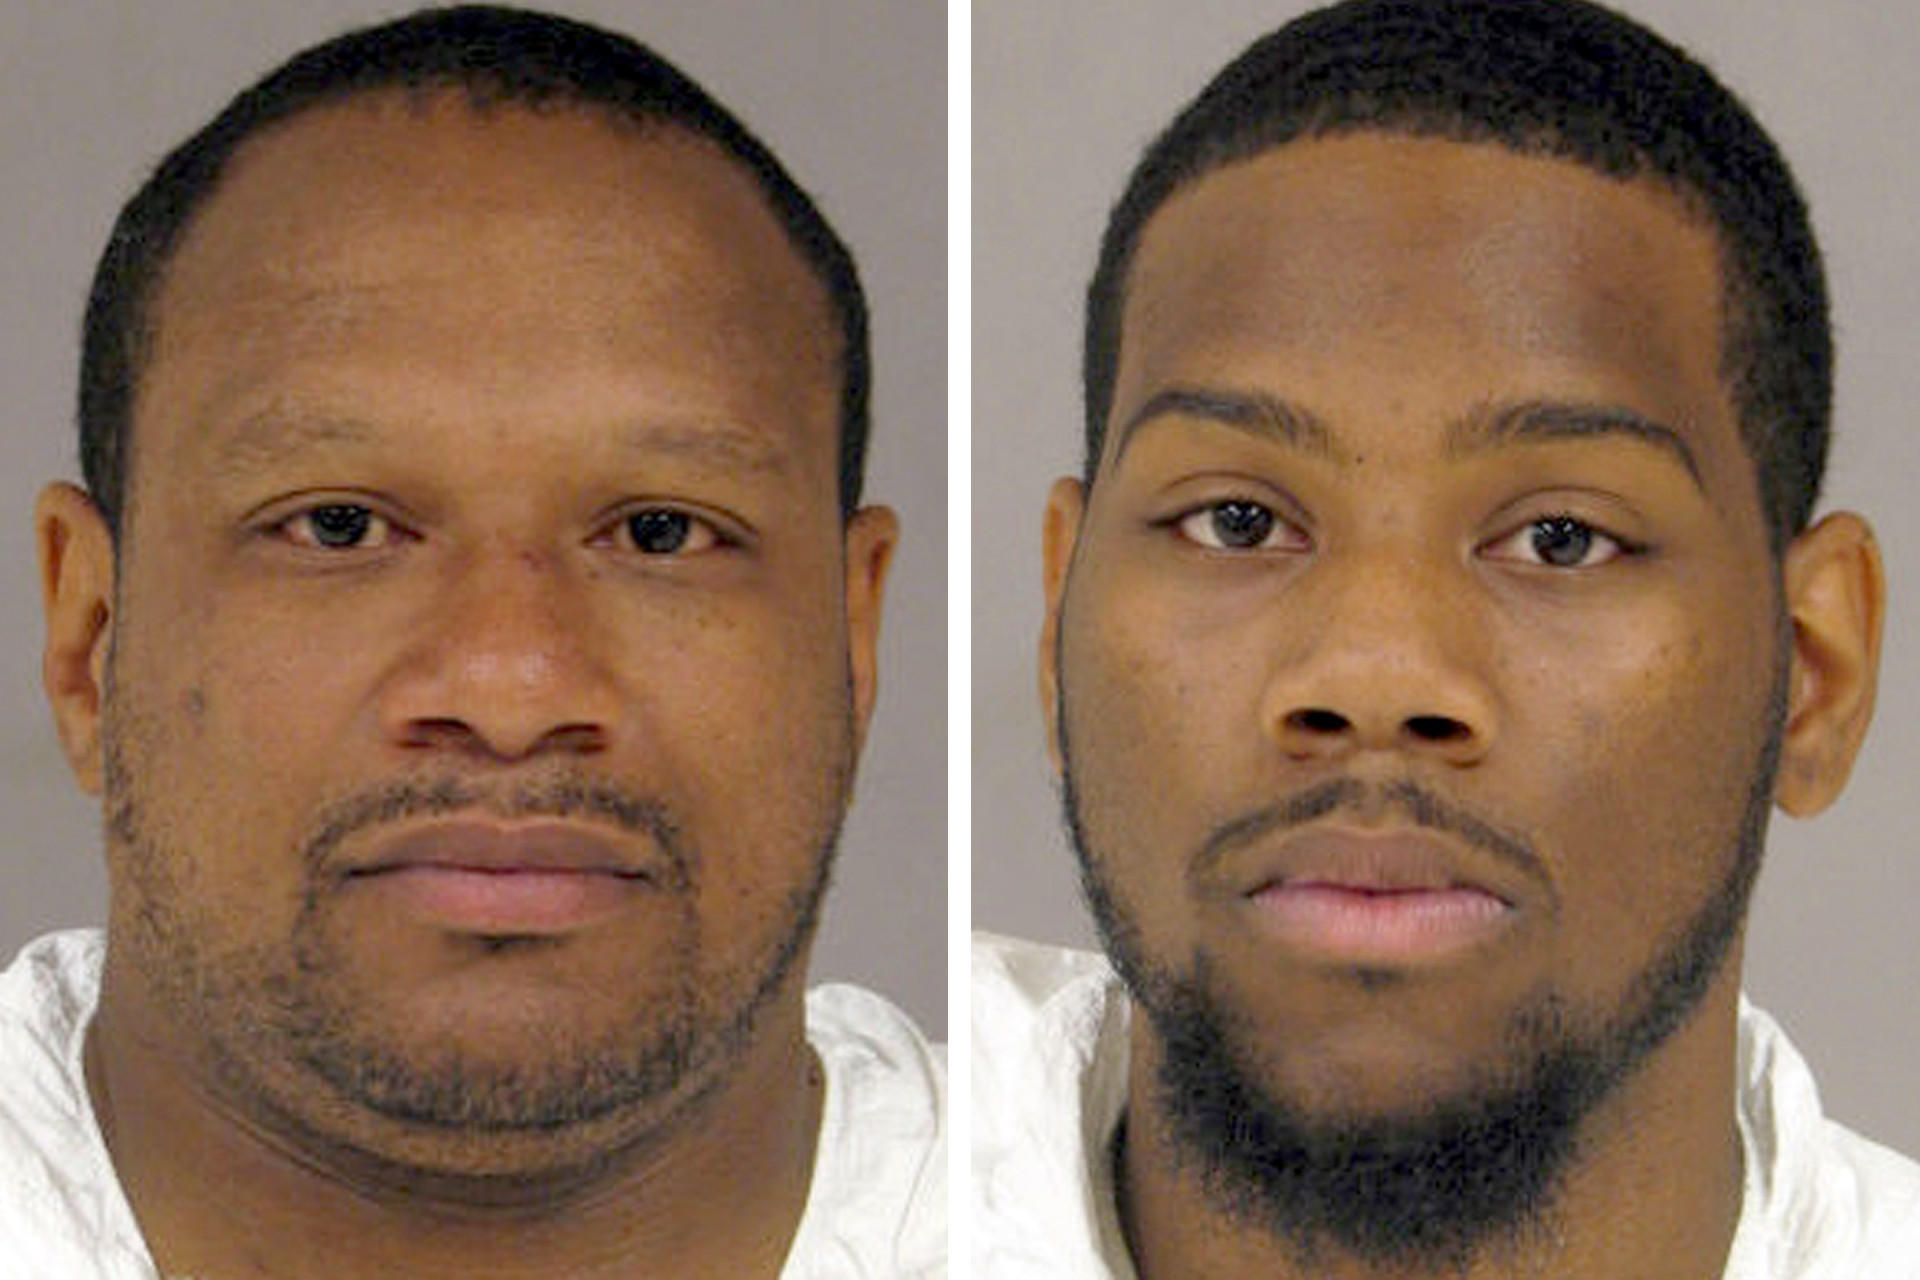 Devin Bickham Sr., left, and Devin Bickham Jr., right, were convicted by separate juries of First Degree Murder for orchestrating a fatal ambush on Chervon Alexander, 29, who was shot and killed as she sat in a car in River Forest the night of July 11, 2011.